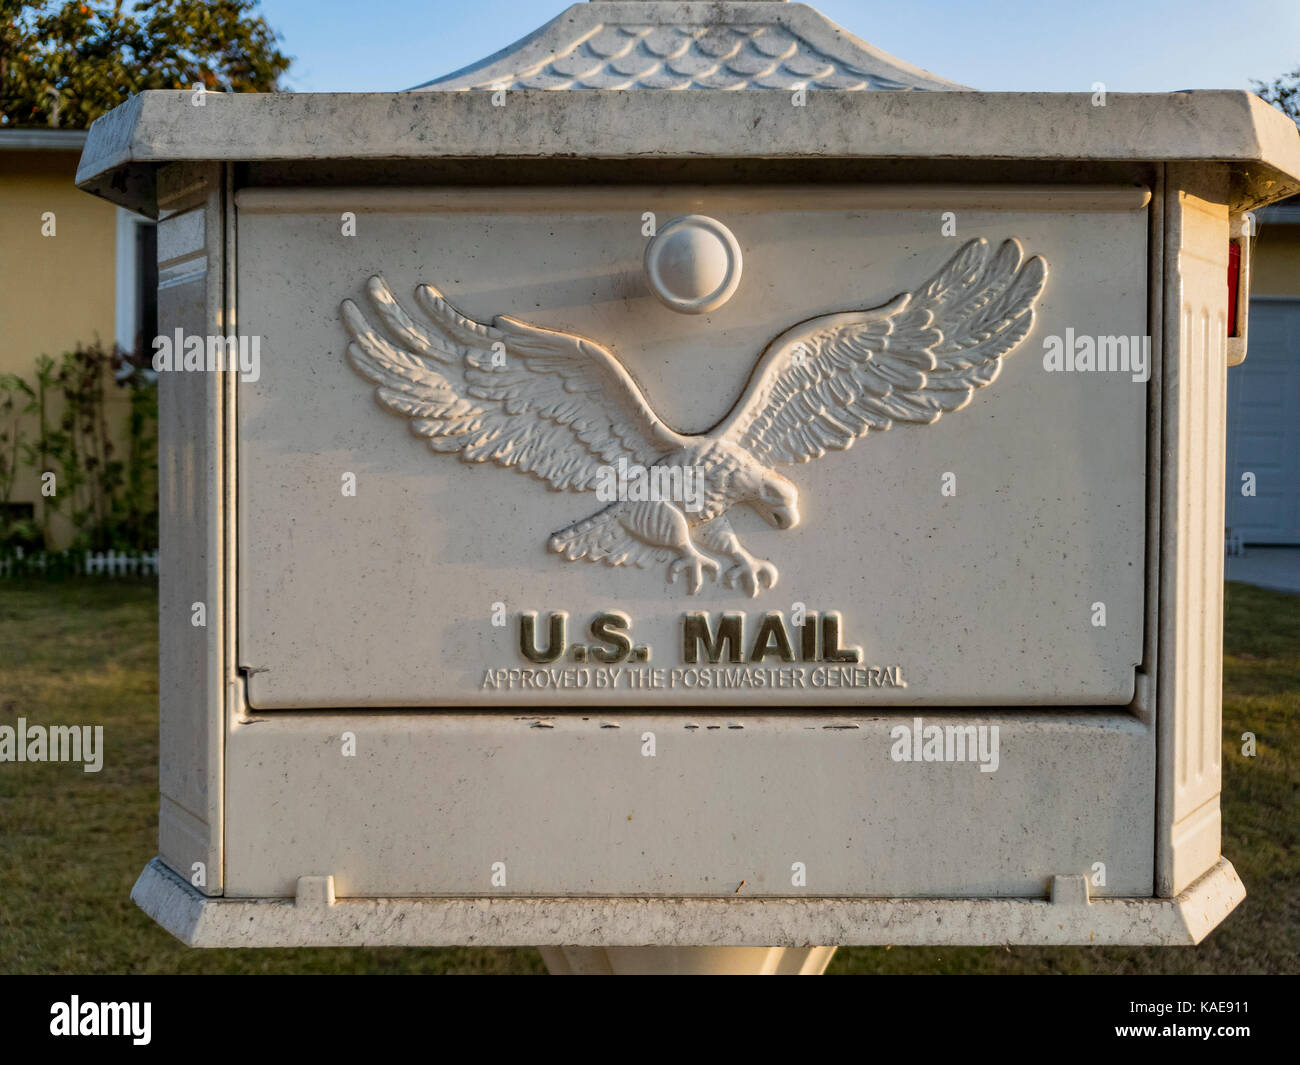 Close up shoot of a mailbox with eagle symbol, photo taken at Temple City, Los Angeles, California, United States - Stock Image